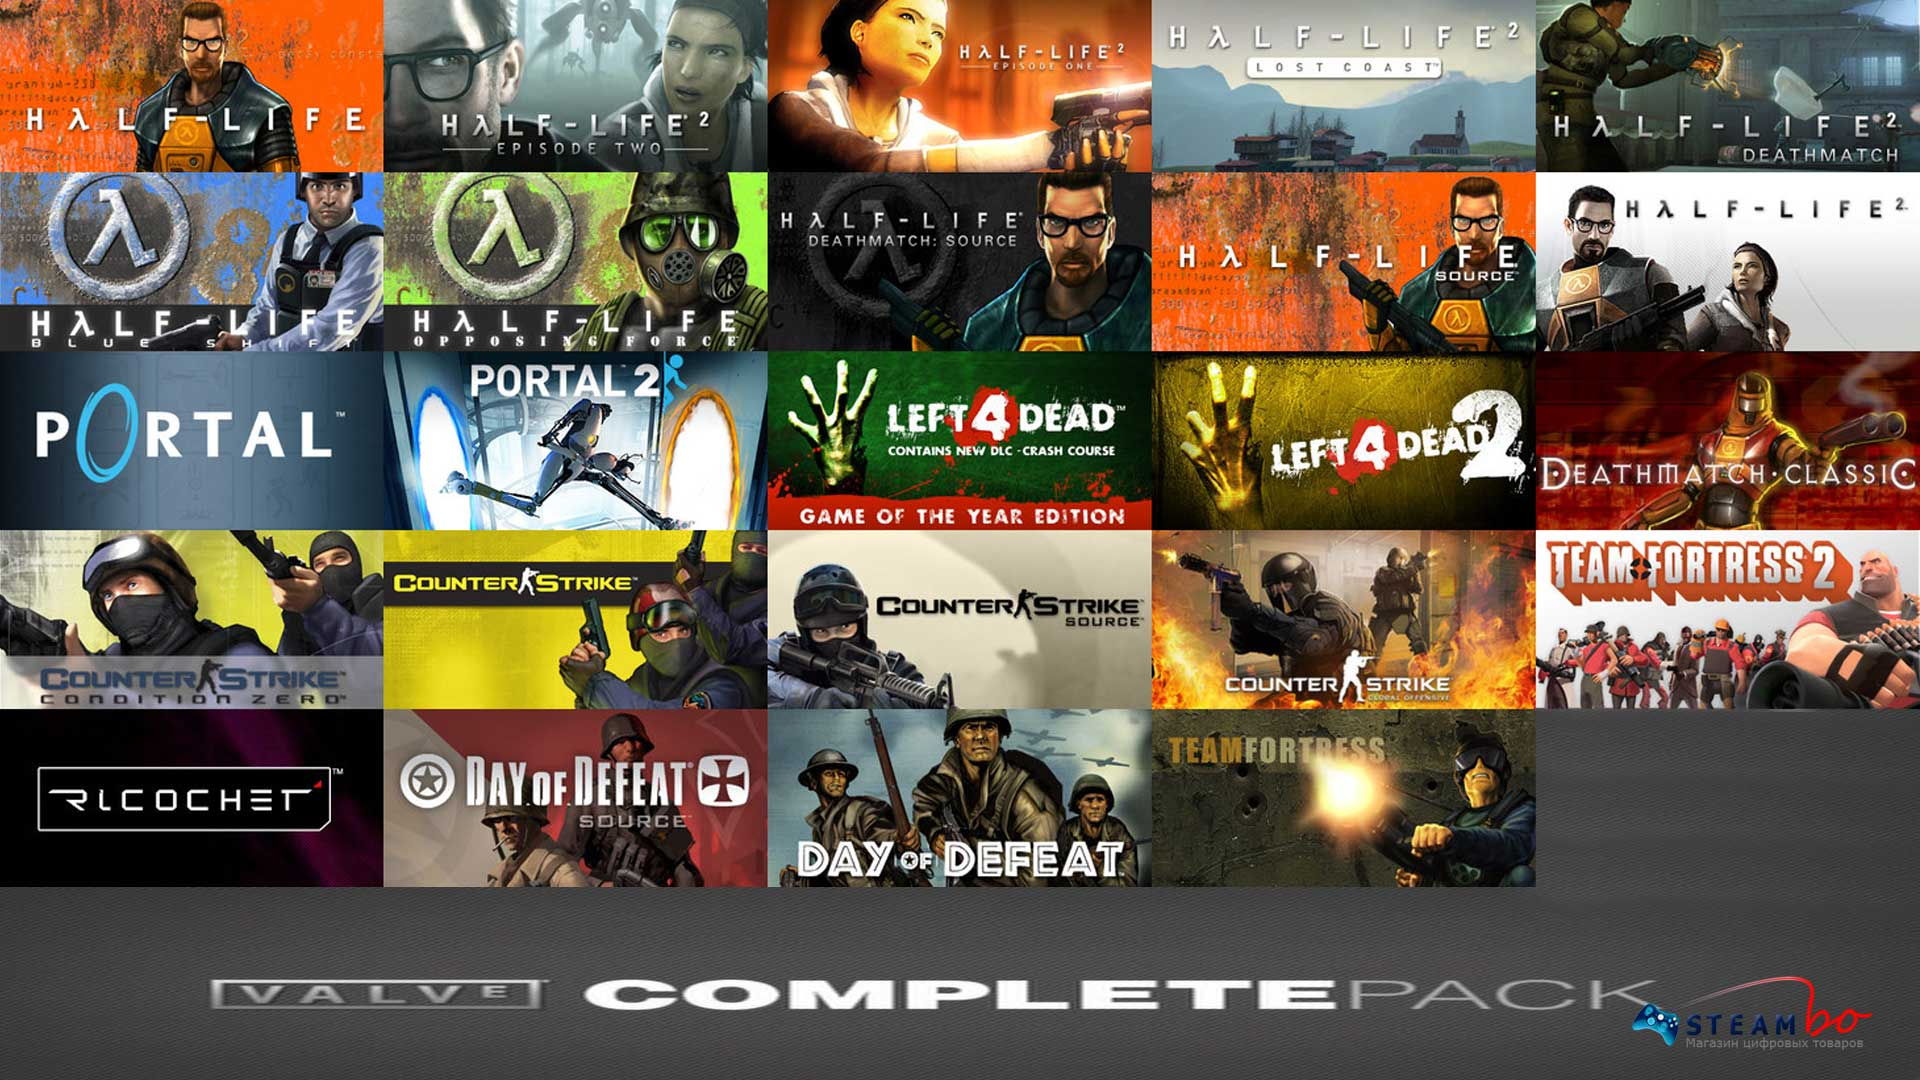 Valve Complete Pack Region Free (Steam Gift/Key)